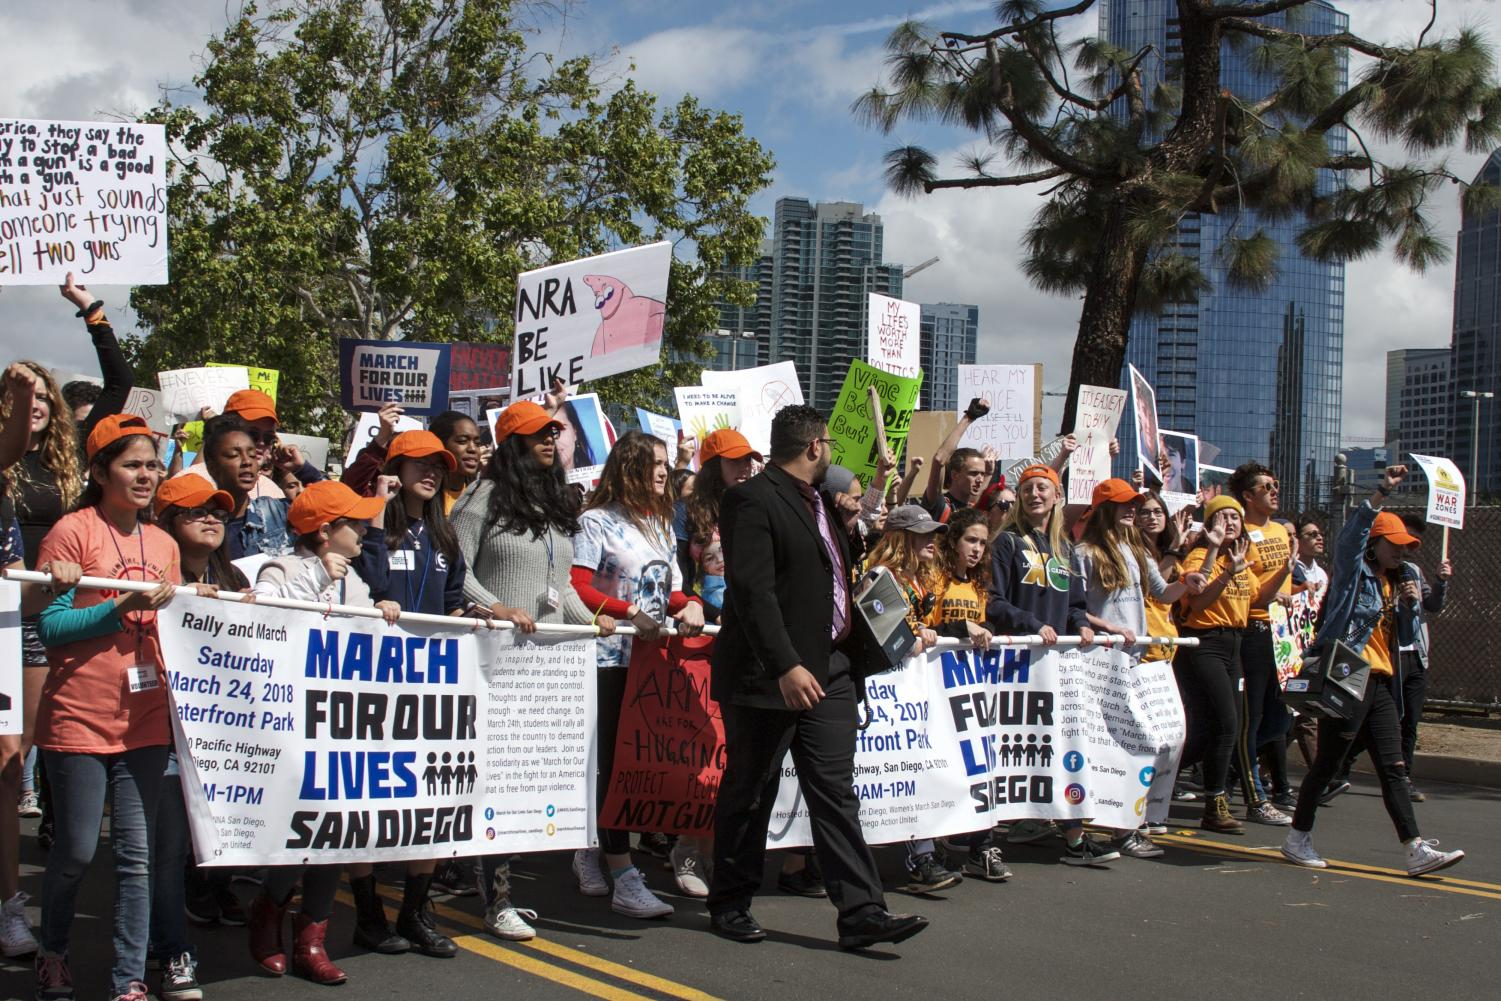 he+March+for+Our+Lives+San+Diego+was+organized+and+lead+by+students+across+San+Diego%2C+many+from+Patrick+Henry+High+School.+By+Shaylyn+Martos%2F+City+Times